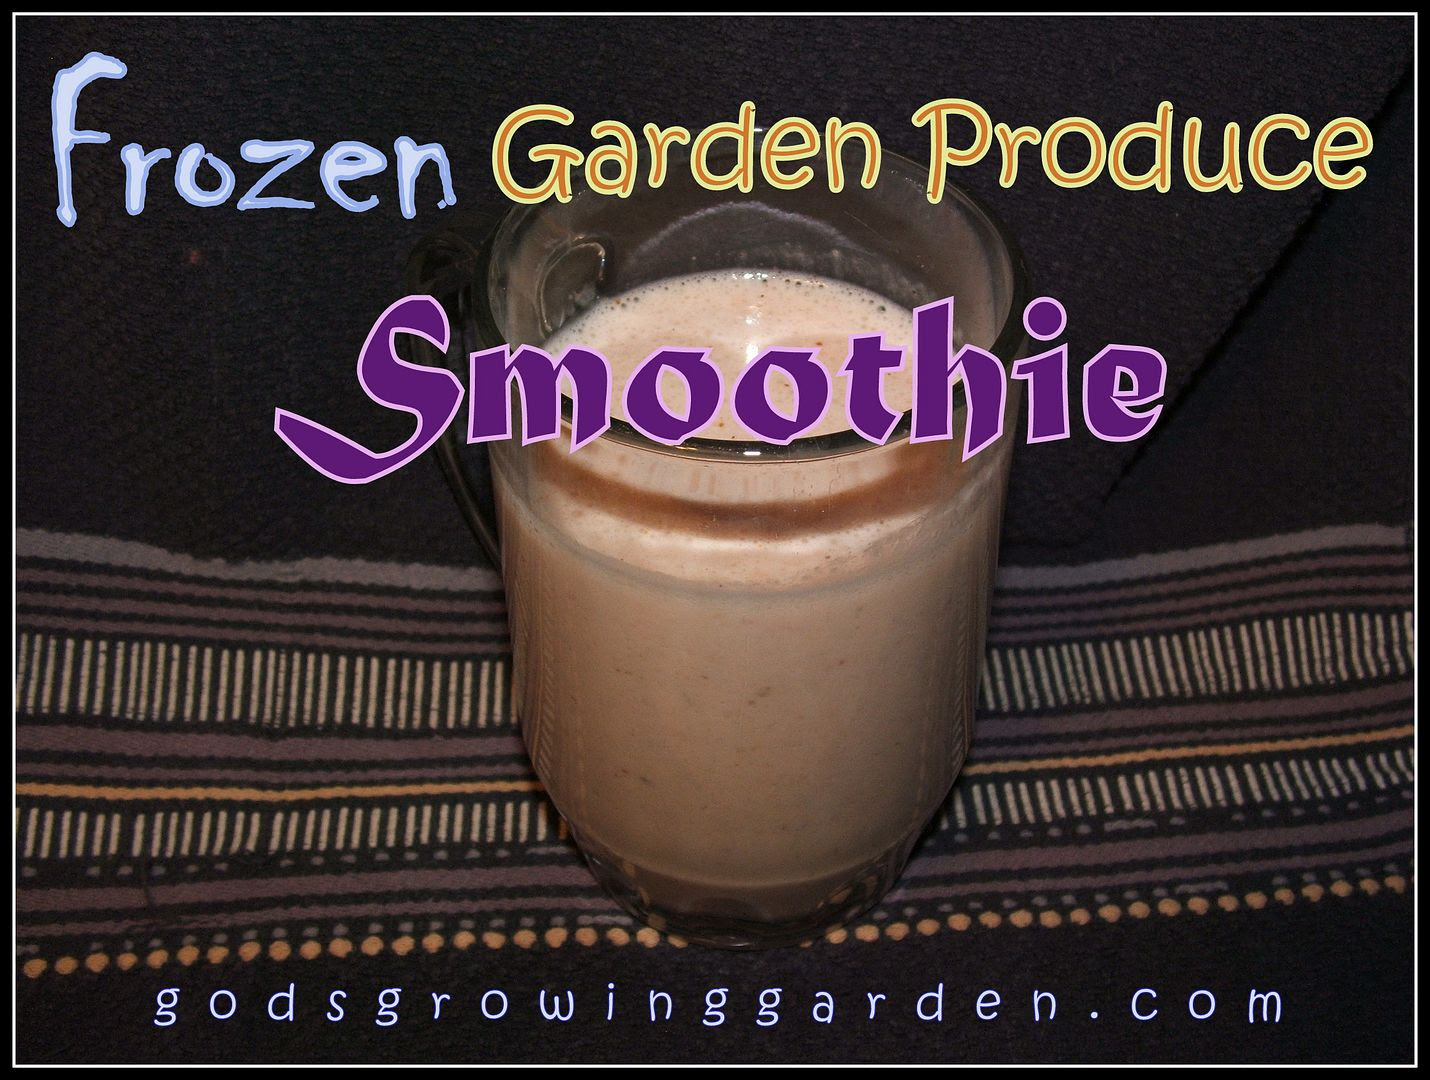 Frozen Garden Produce Smoothie by Angie Ouellette-Tower for godsgrowinggarden.com photo 008_zps99fe6171.jpg